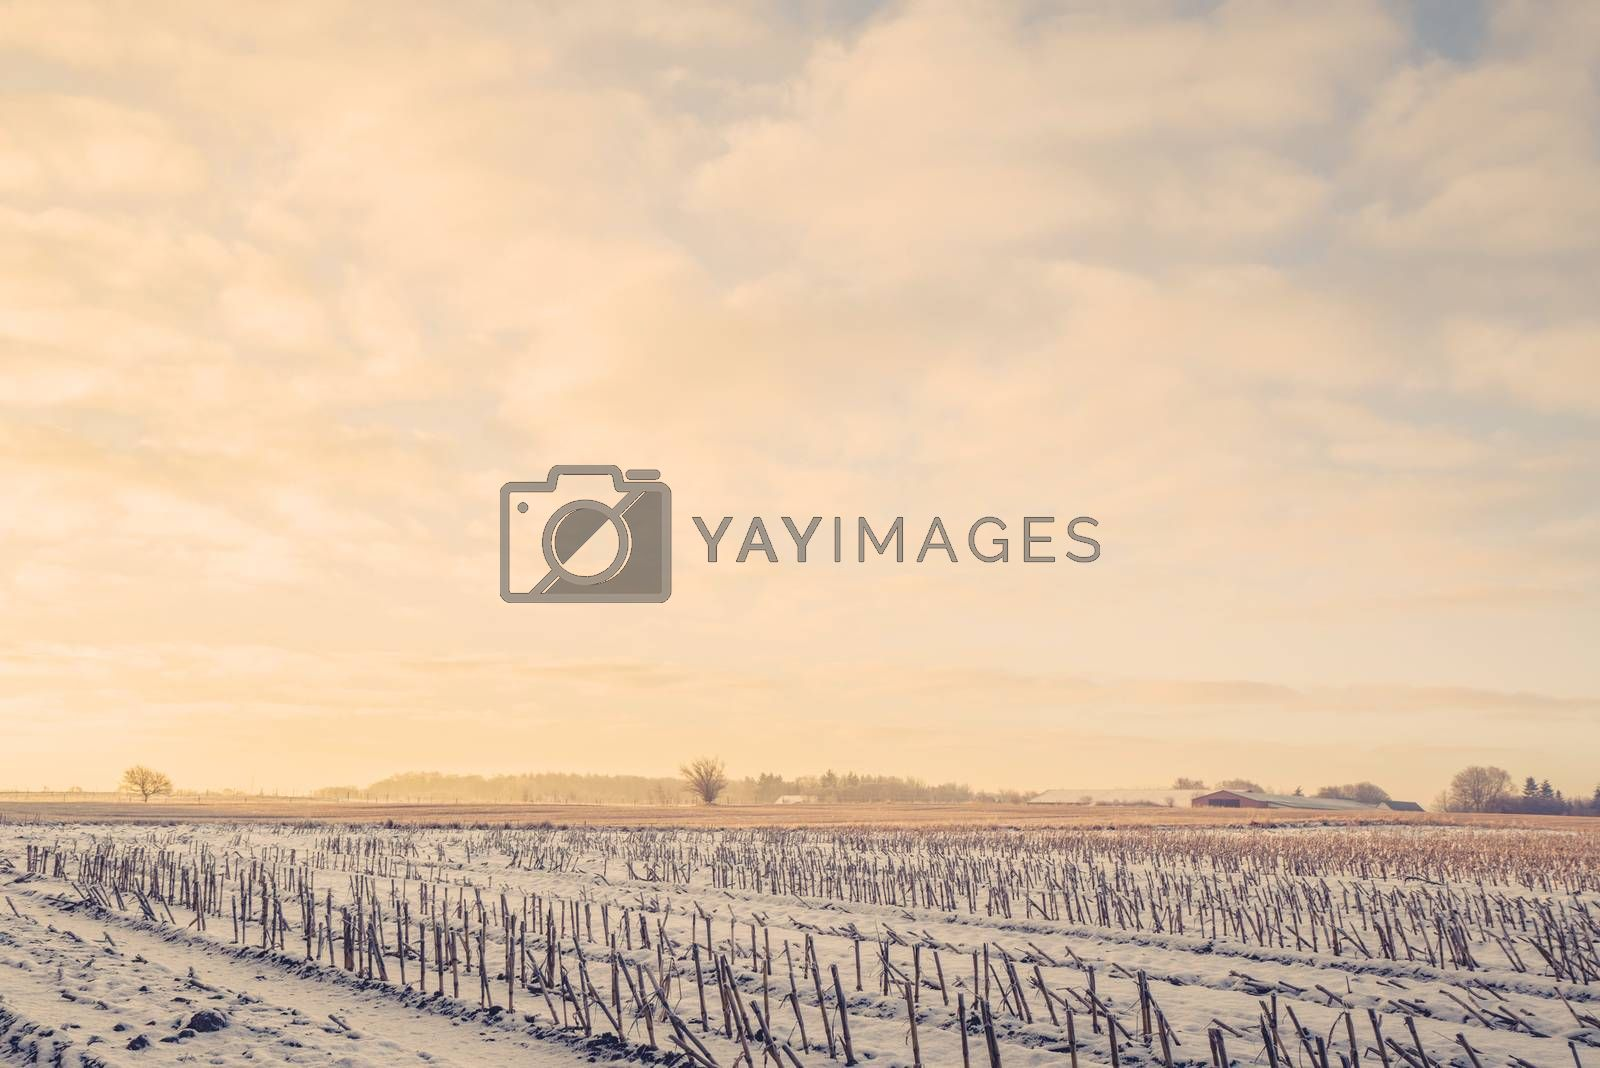 Countryside landscape with crops on a field in the wintertime